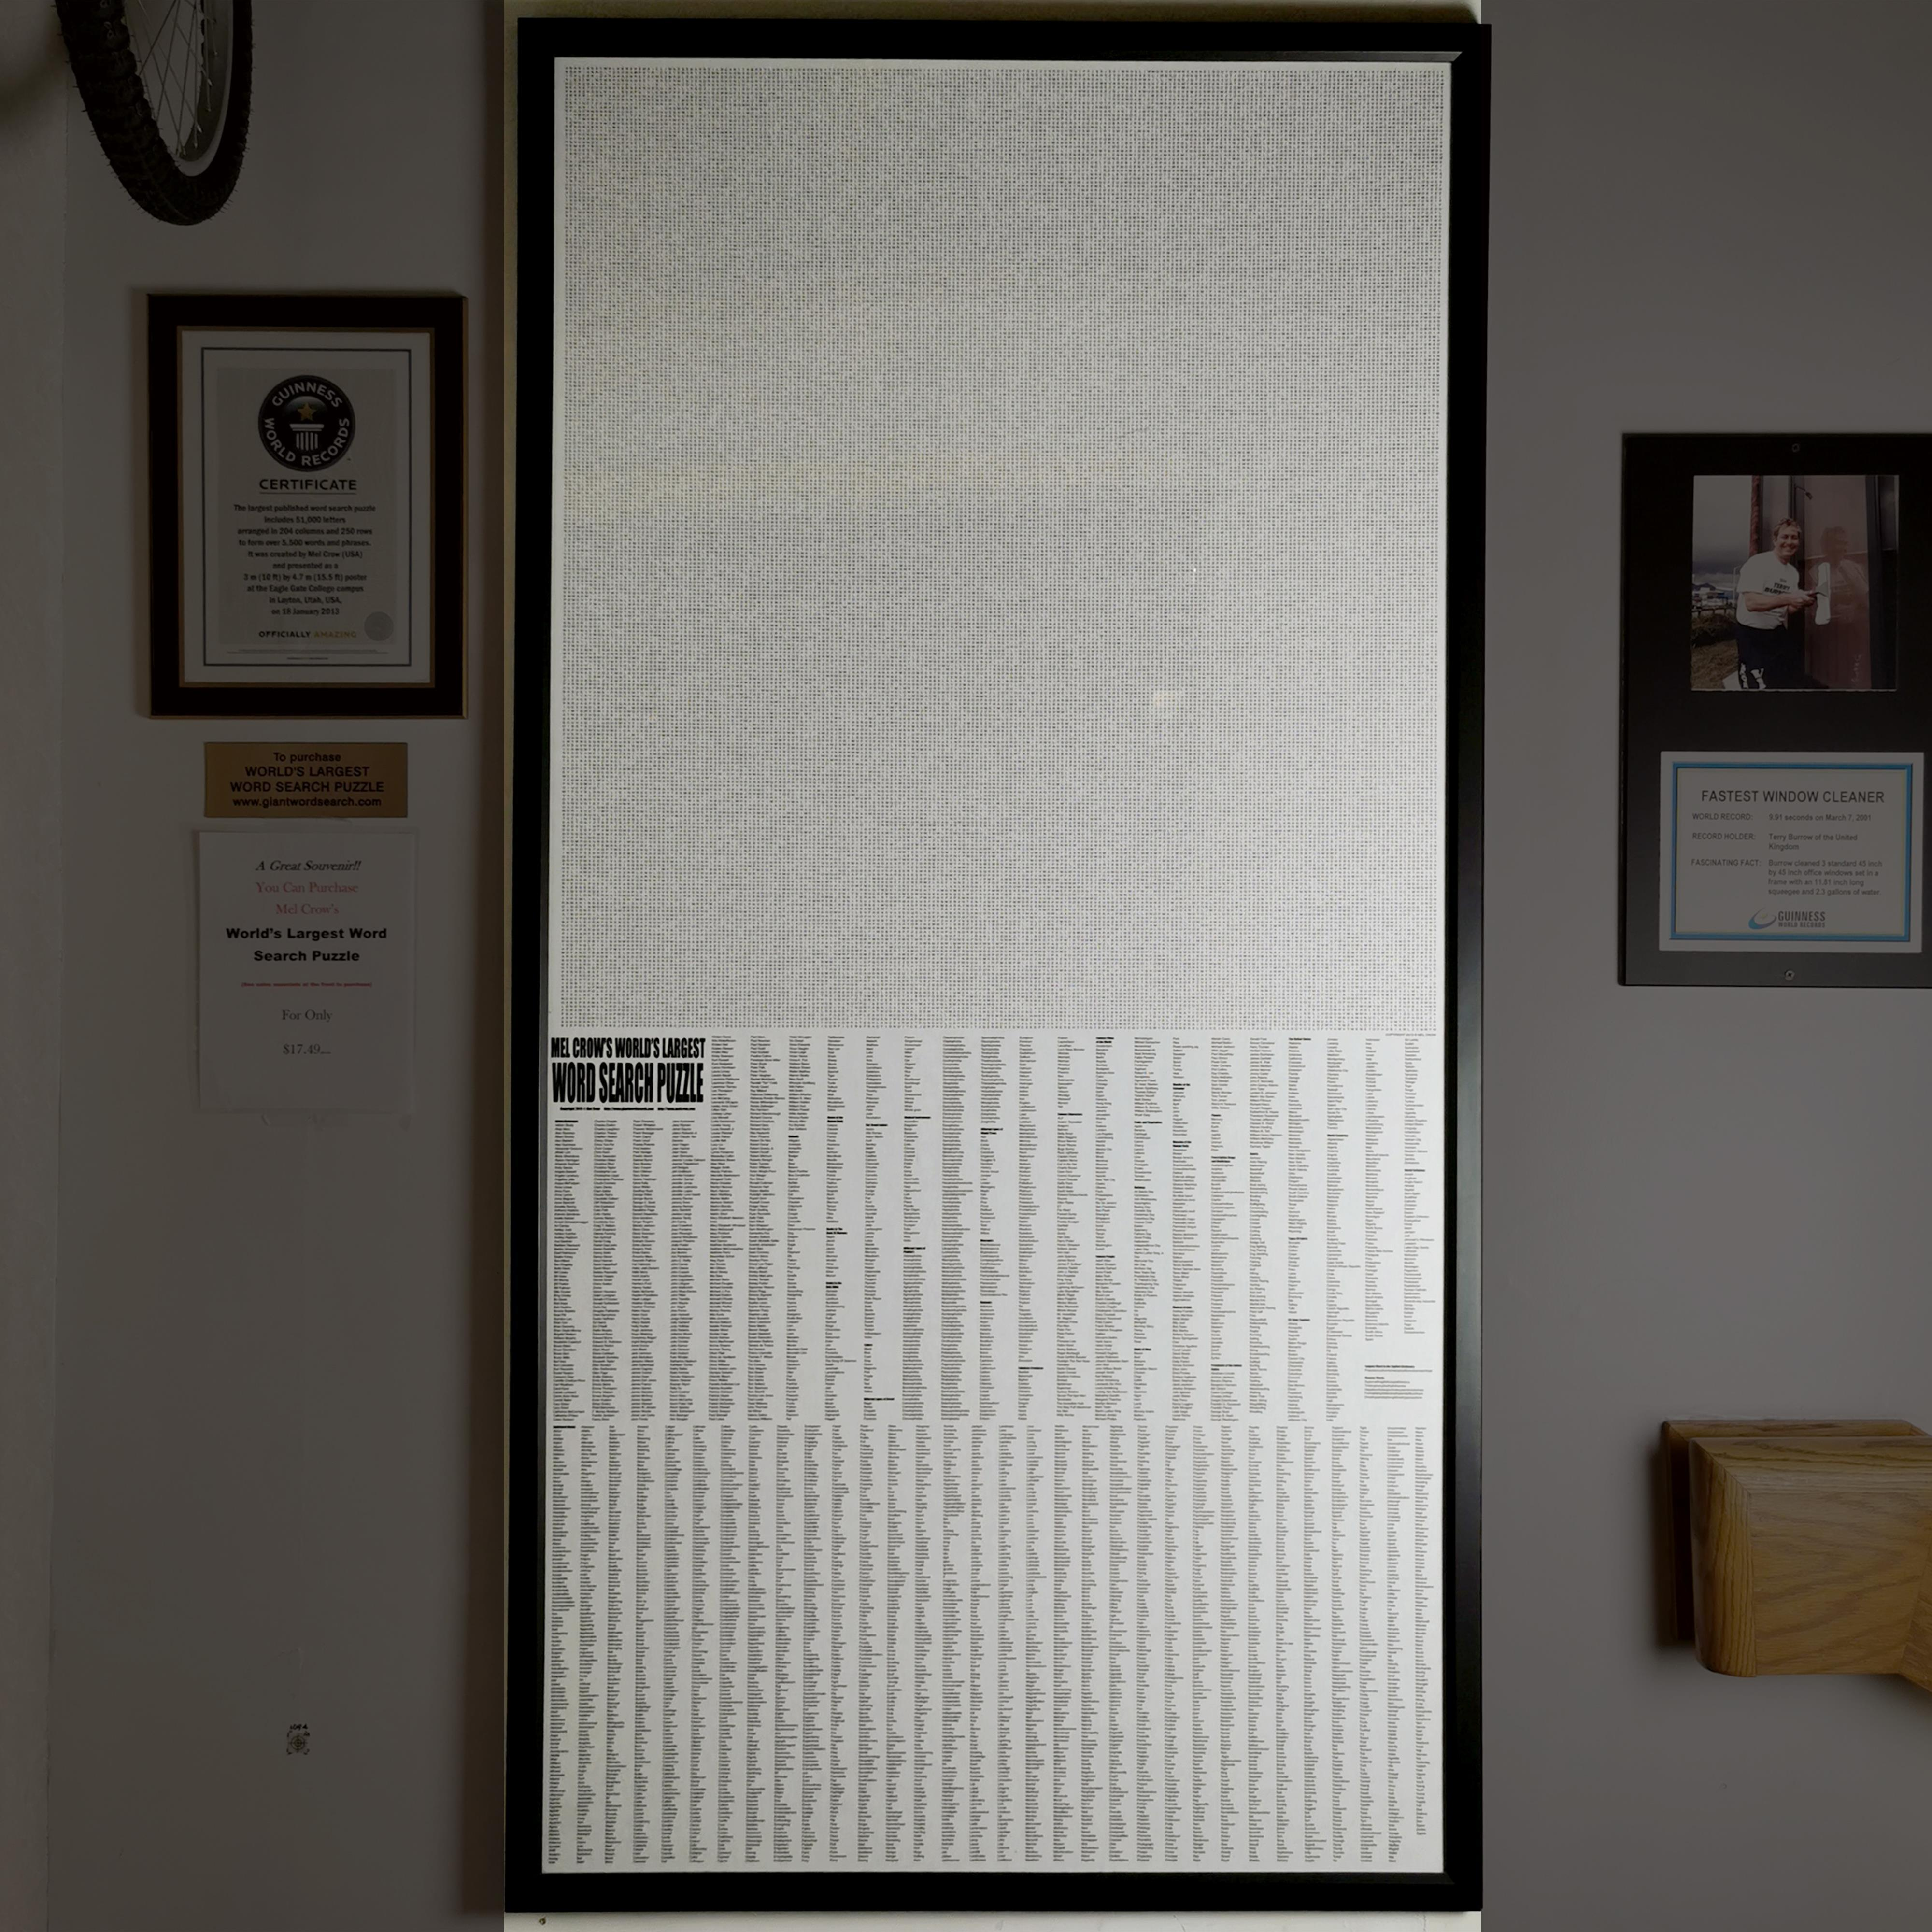 World's Largest Word Search Puzzle Guinness World Record Replica